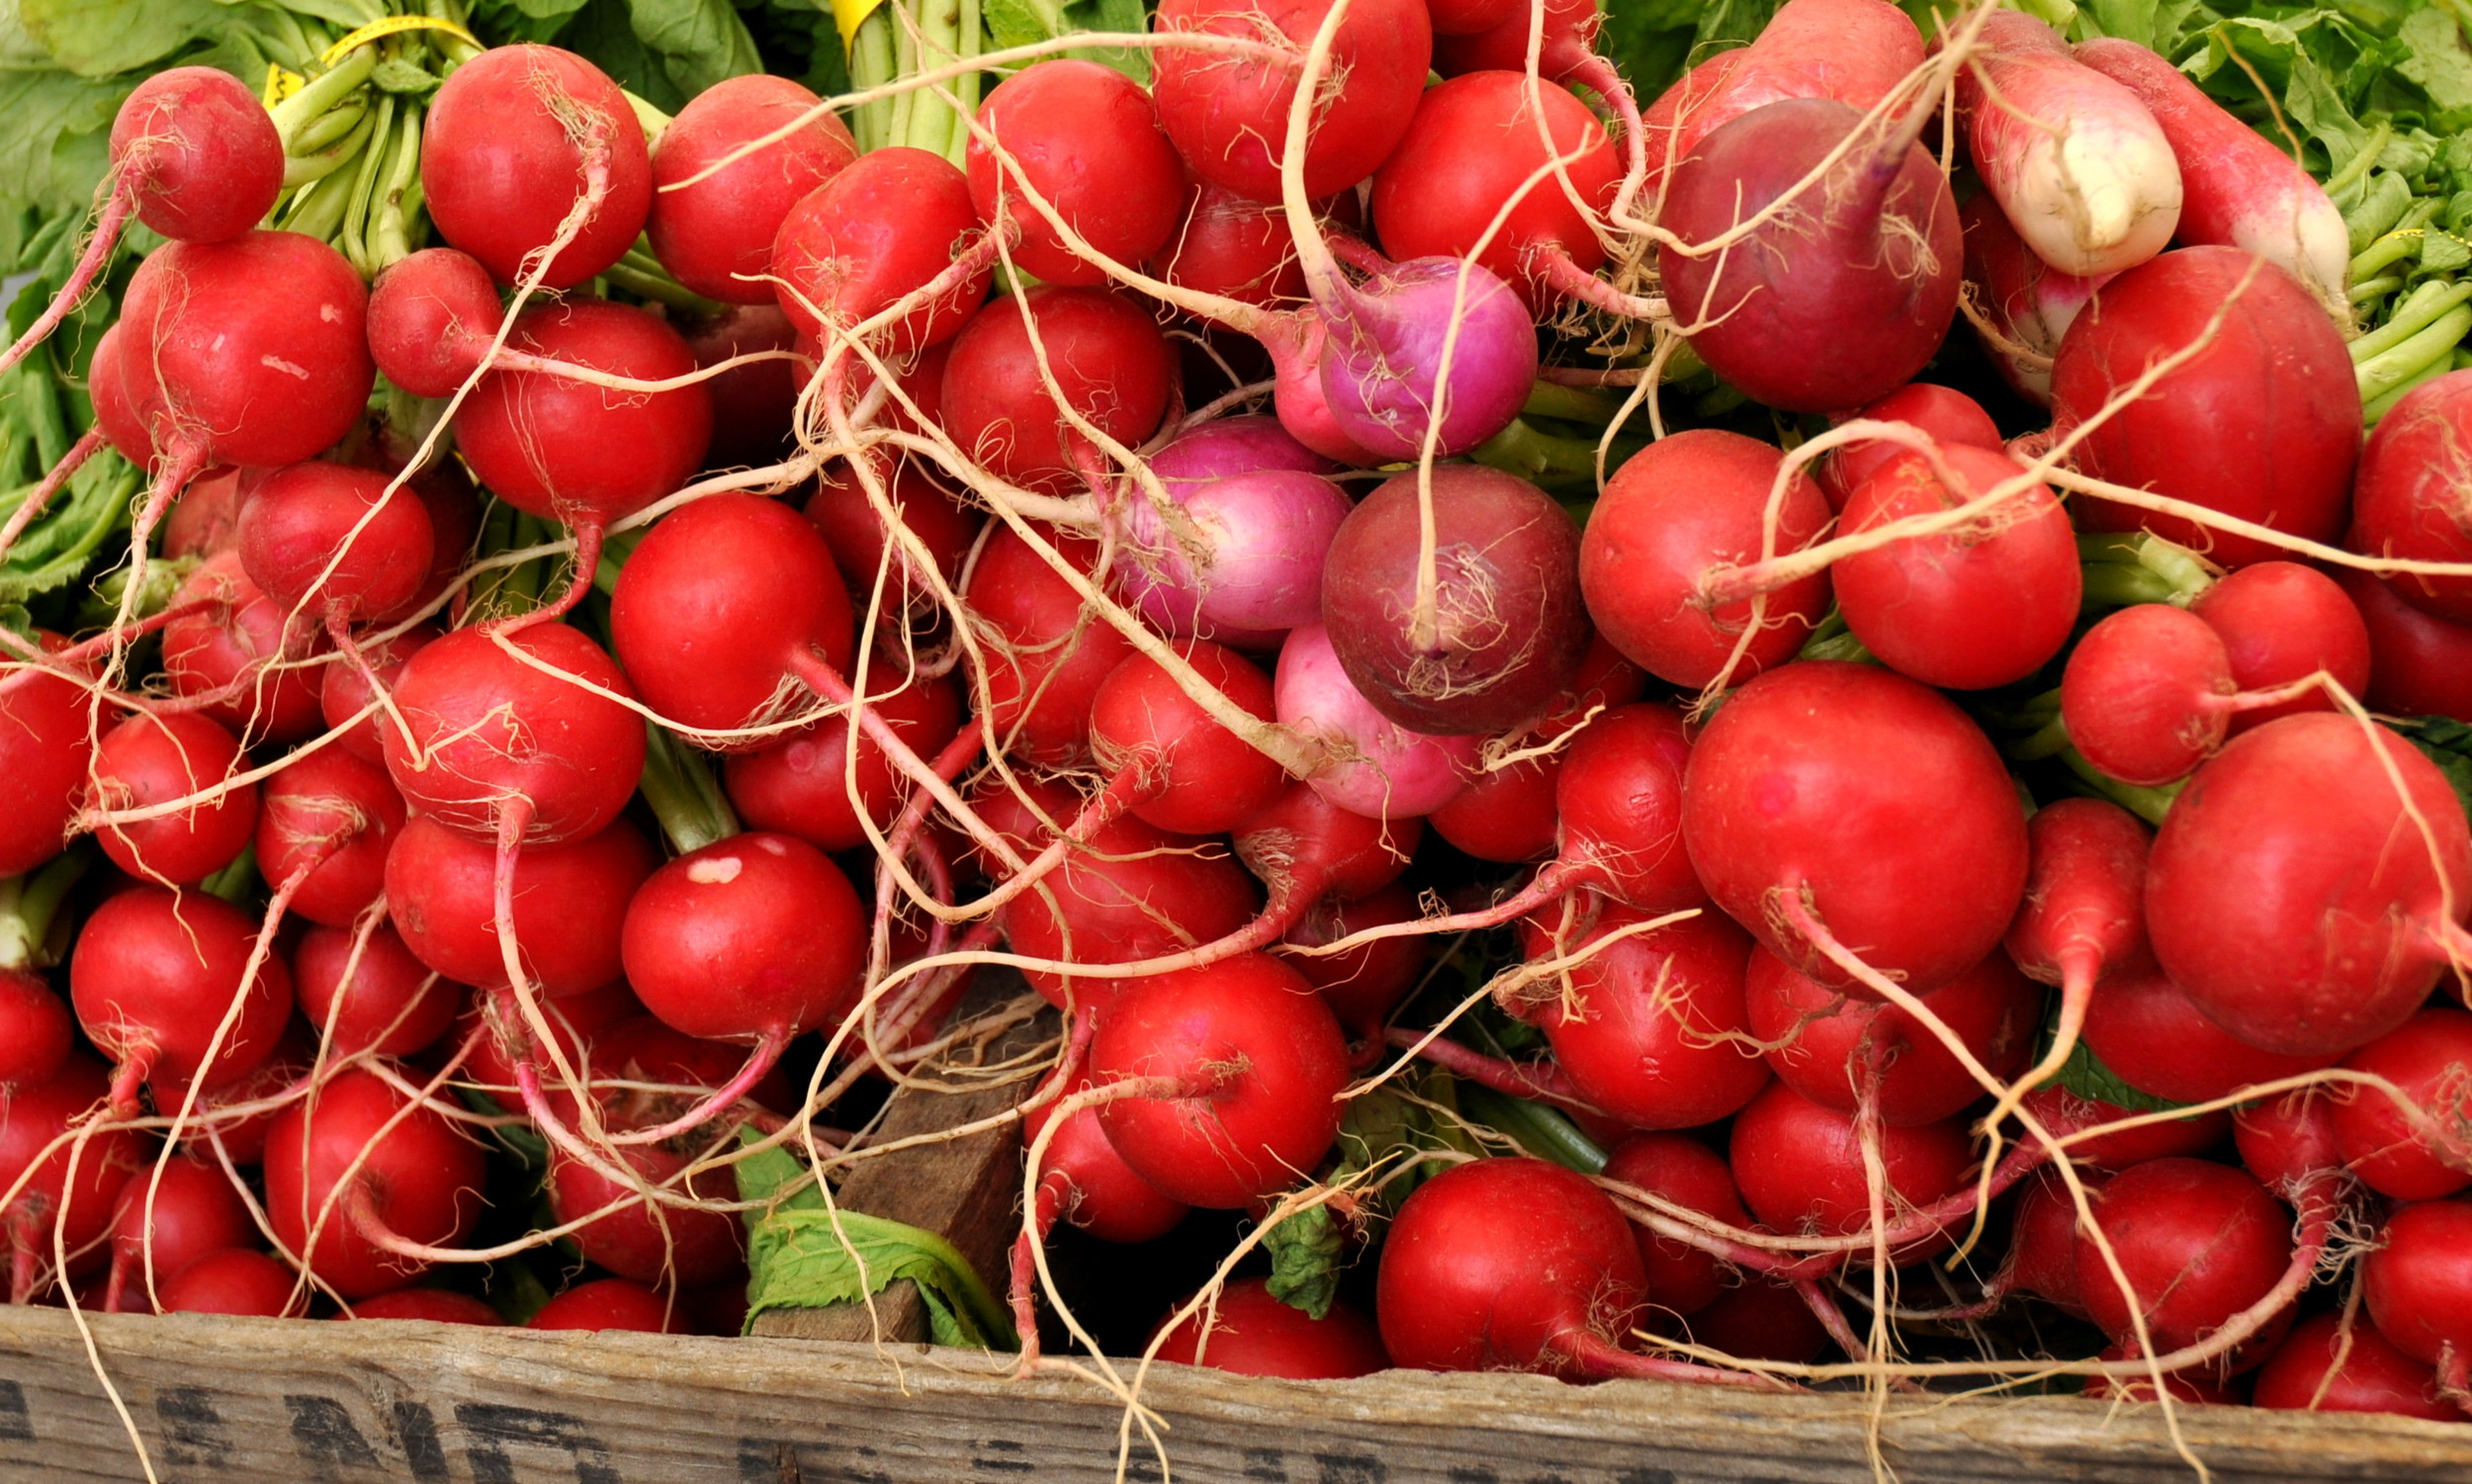 Radishes from Alm Hill Gardens. Photo copyright 2014 by Zachary D. Lyons.